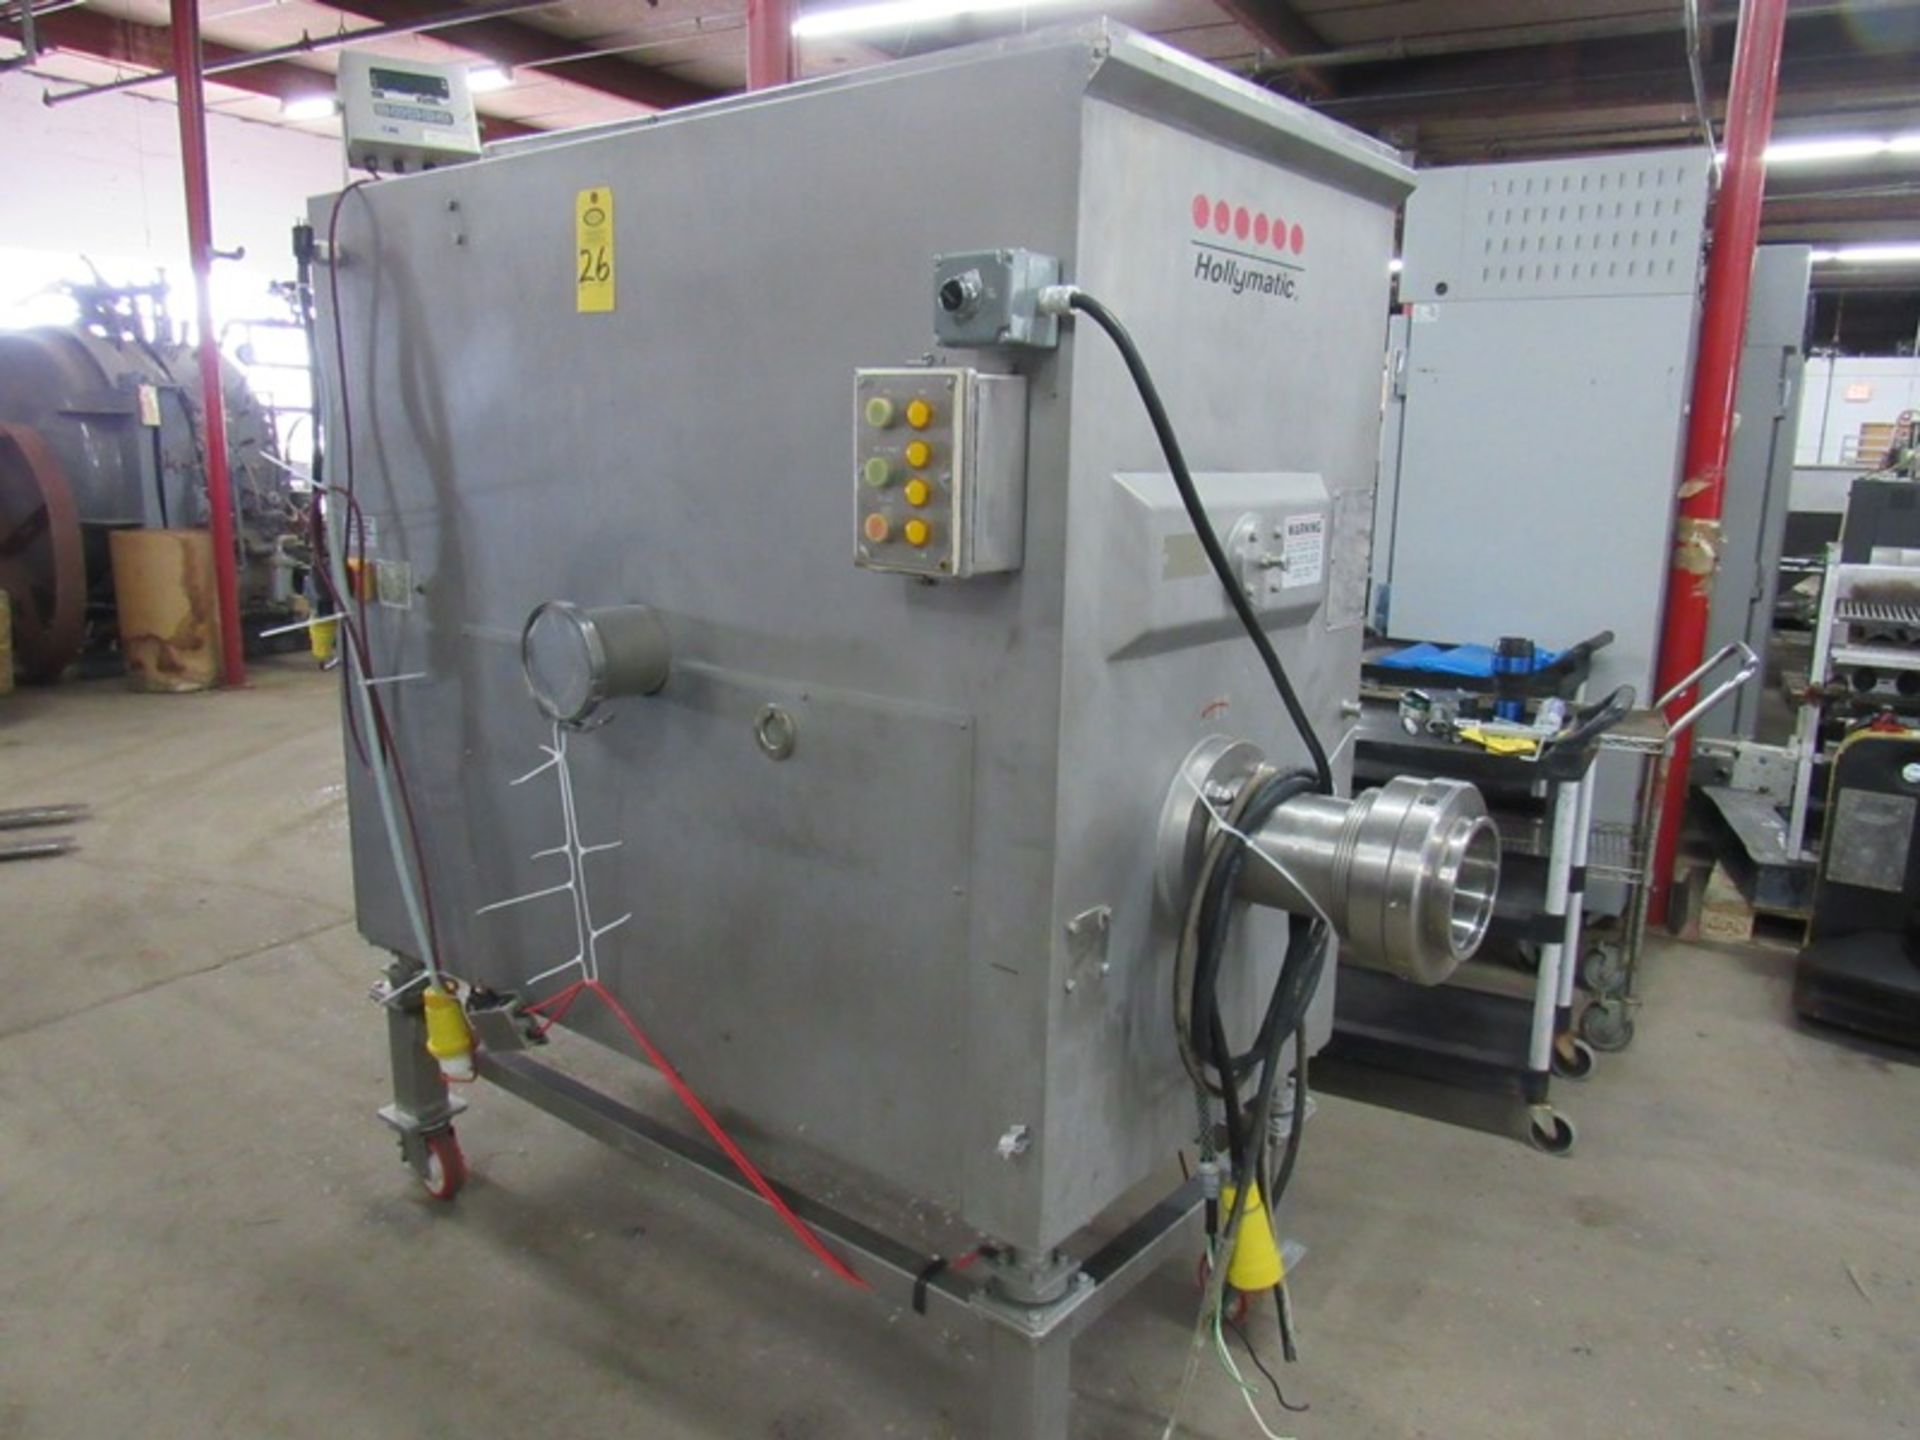 """Lot 26 - Hollymatic Mdl. 4300 Mixer/Grinder, load cells, on wheels, Ser. #4300120010, 6"""" head plates, GSE"""